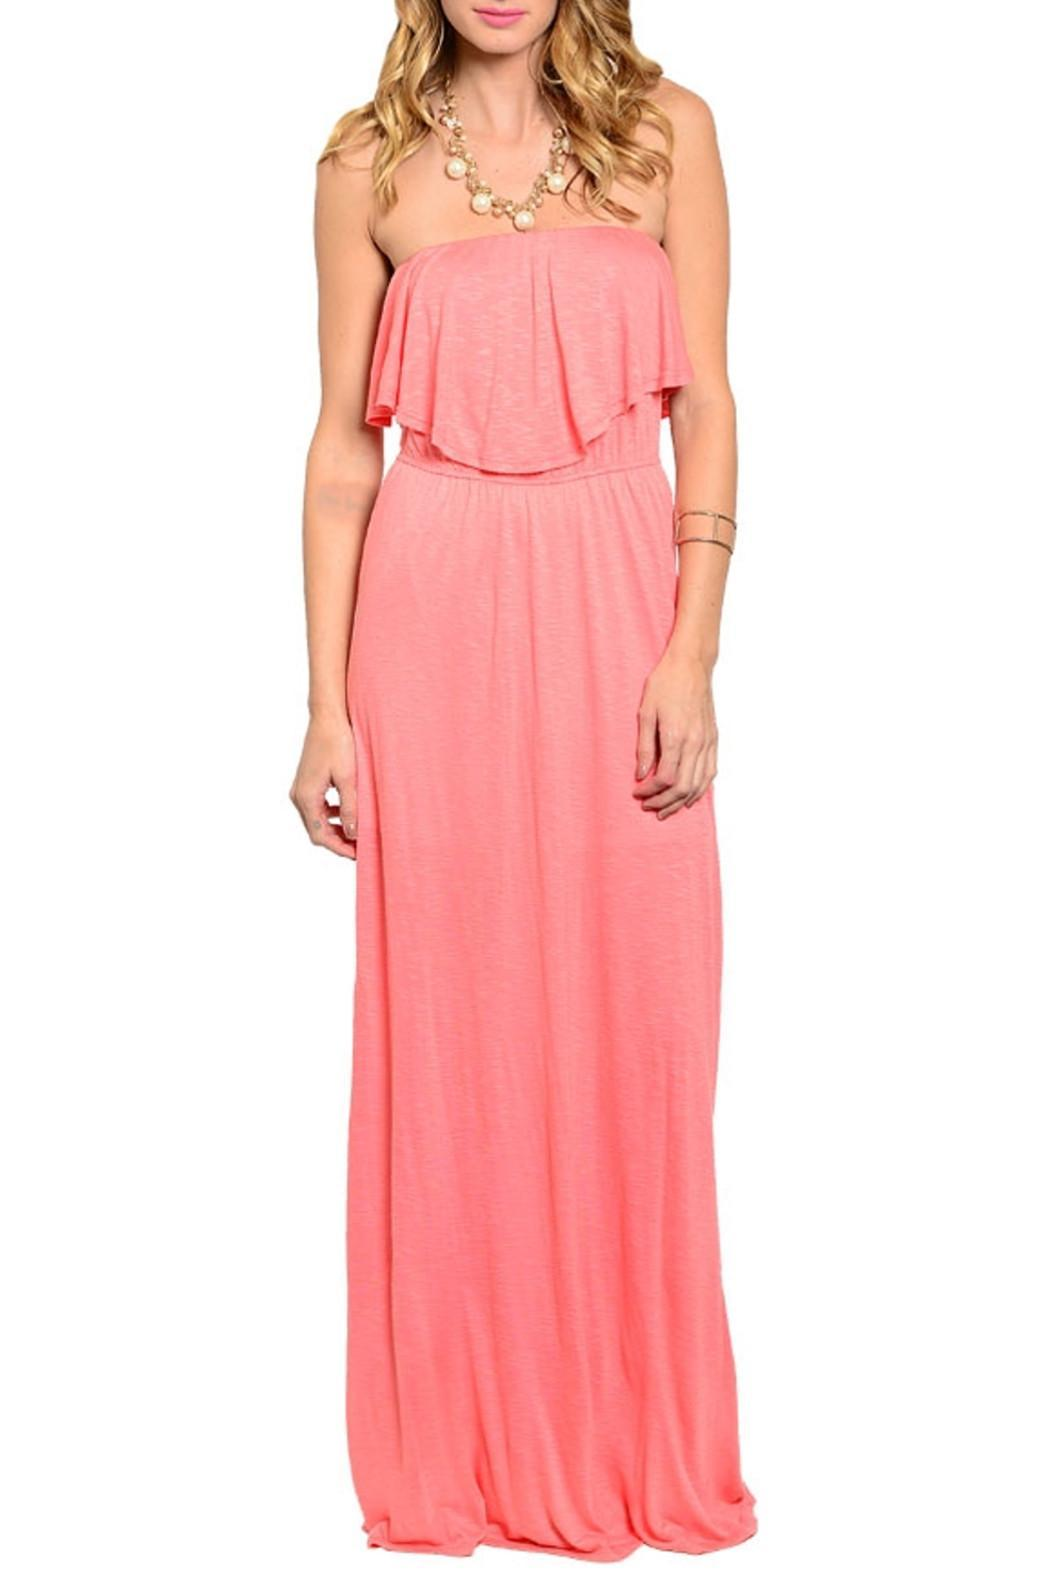 Joyce Coral Strapless Dress - Main Image